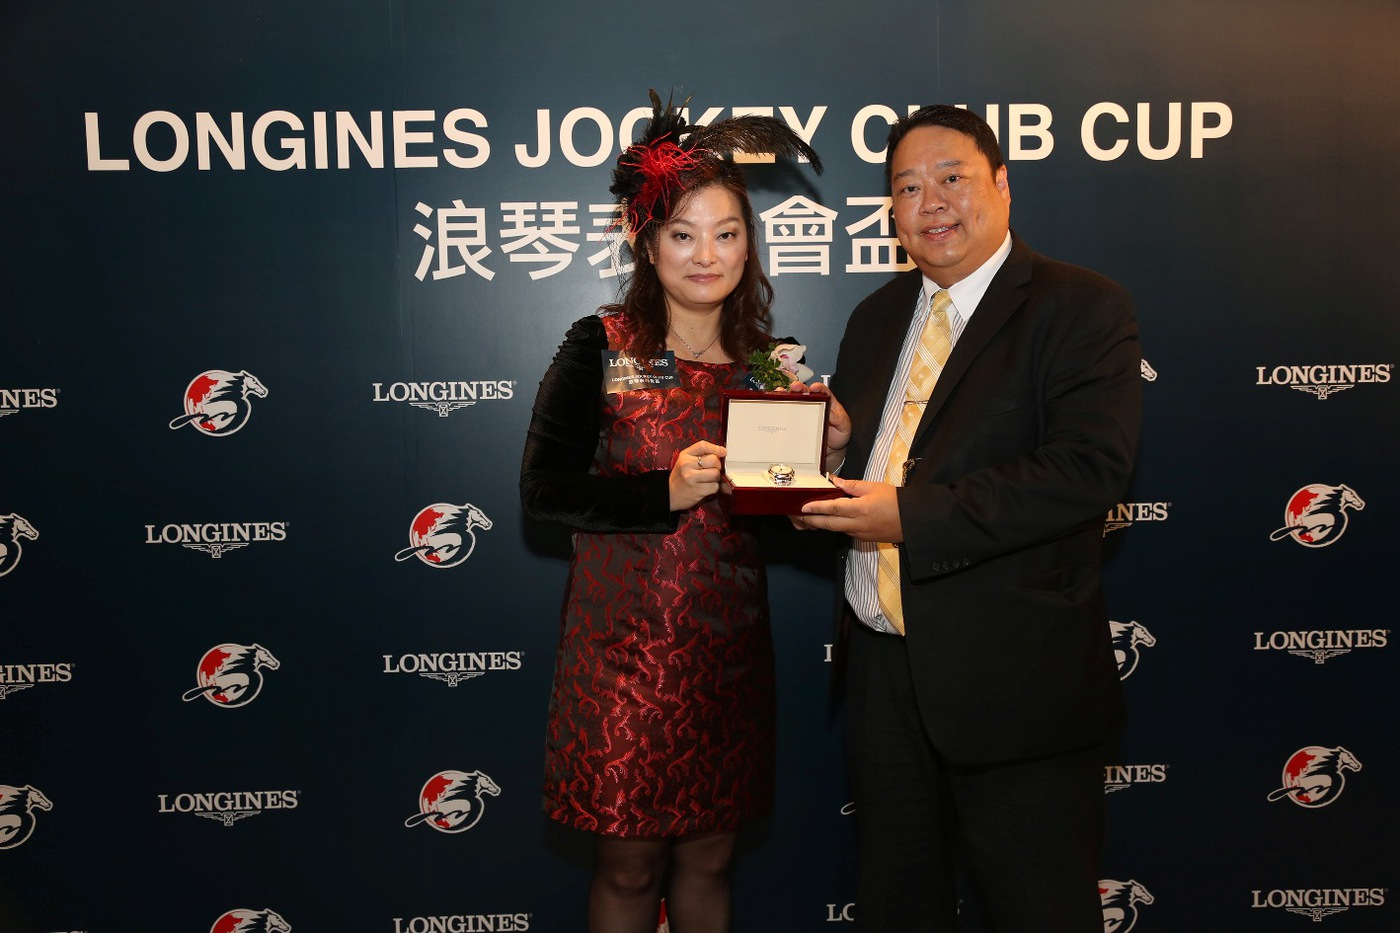 Longines Flat Racing Event: The first ever Longines Jockey Club Cup showcased Longines' passion for equestrian sports 6